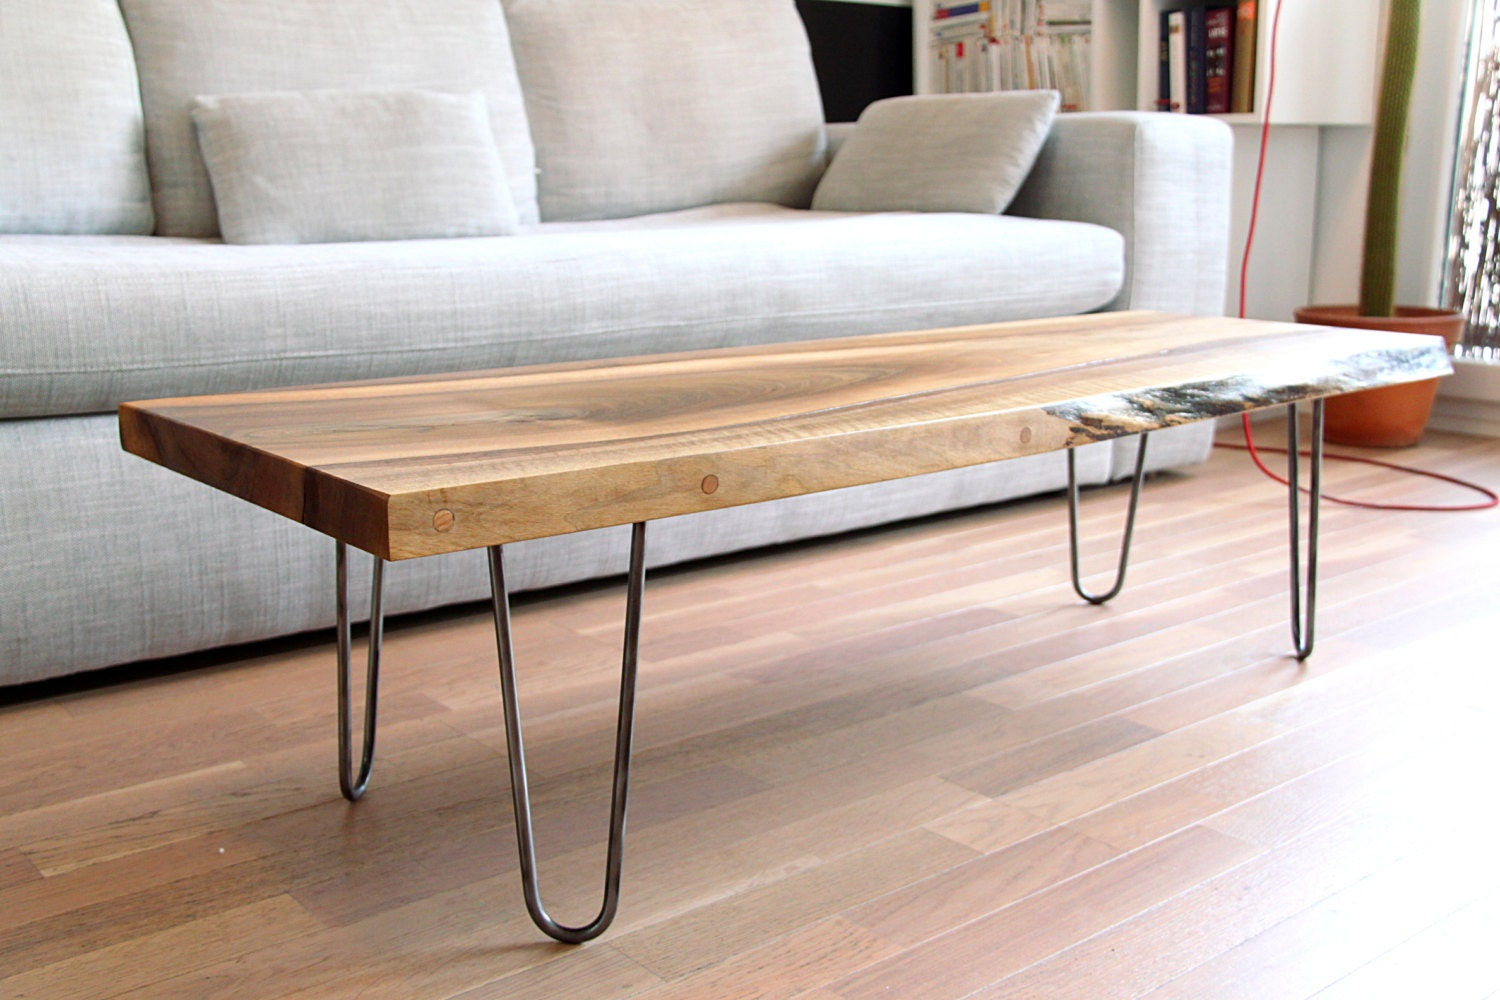 Sold Live Edge Solid Walnut Coffee Table On Hairpin Legs